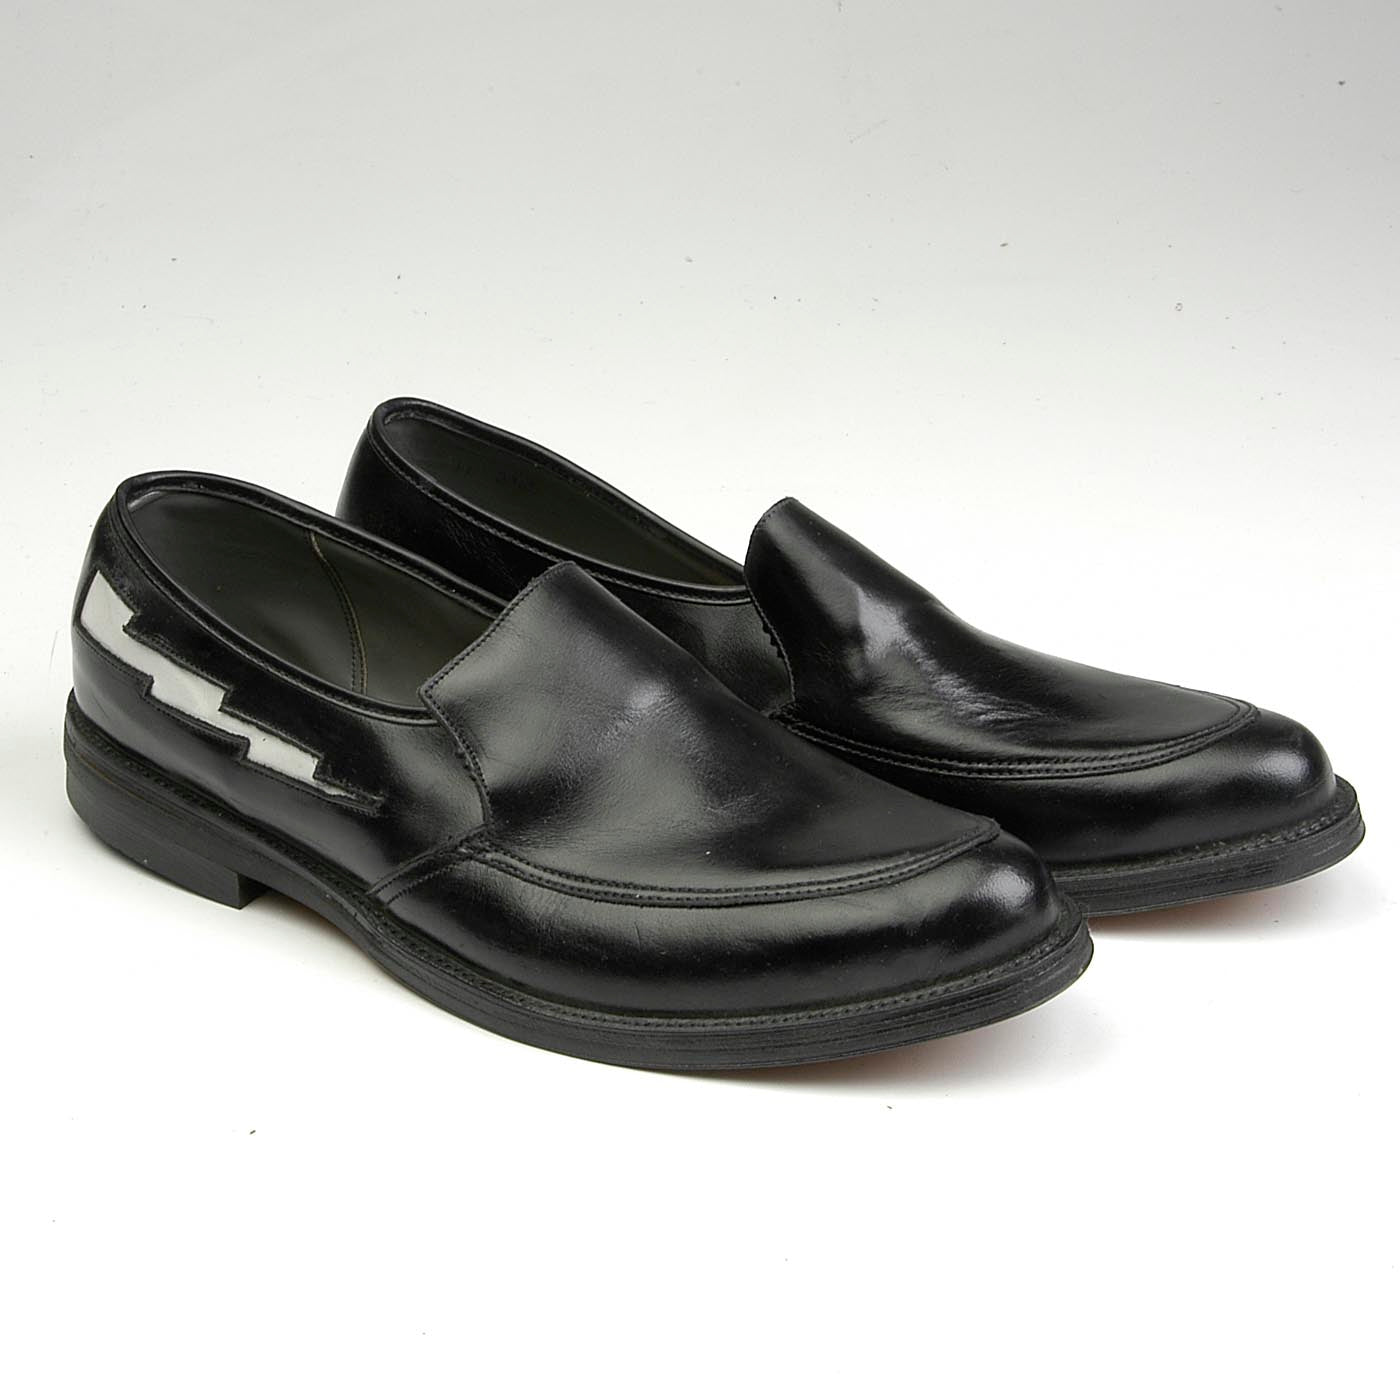 sz 11 Deadstock 1950s Men's Rockabilly Loafers with White Lightning Bolts